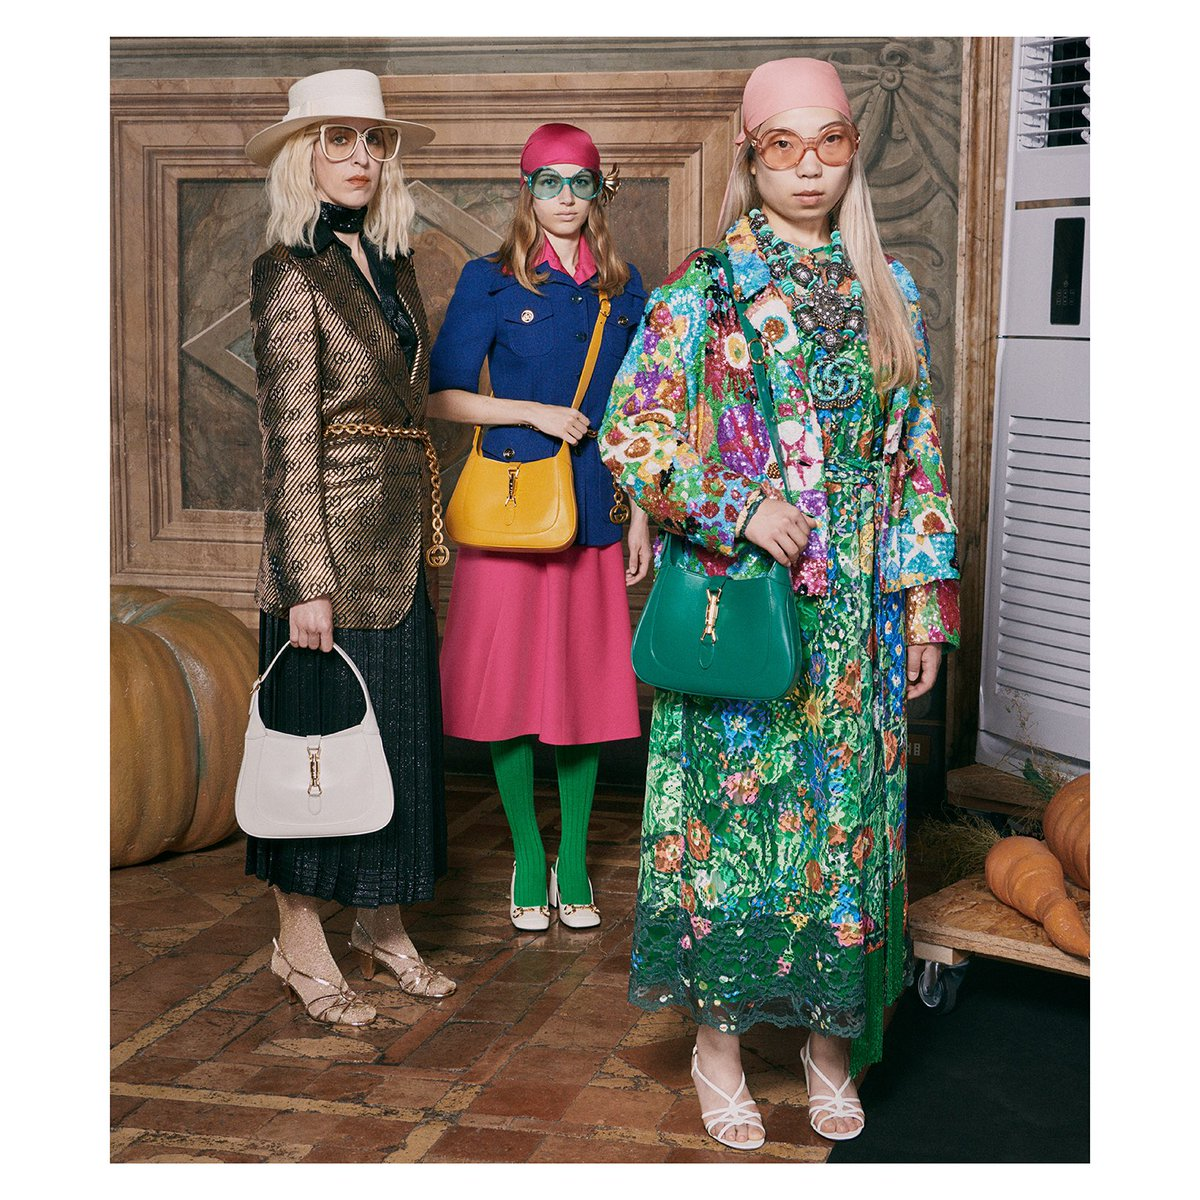 A collection designed to discard the old rules of fashion and create pieces meant to be worn always and not just for one season, #GucciEpilogue is defined by 70s silhouettes and an eclectic mix of patterns—including a #KenScott floral print. #GucciKenScott #AlessandroMichele